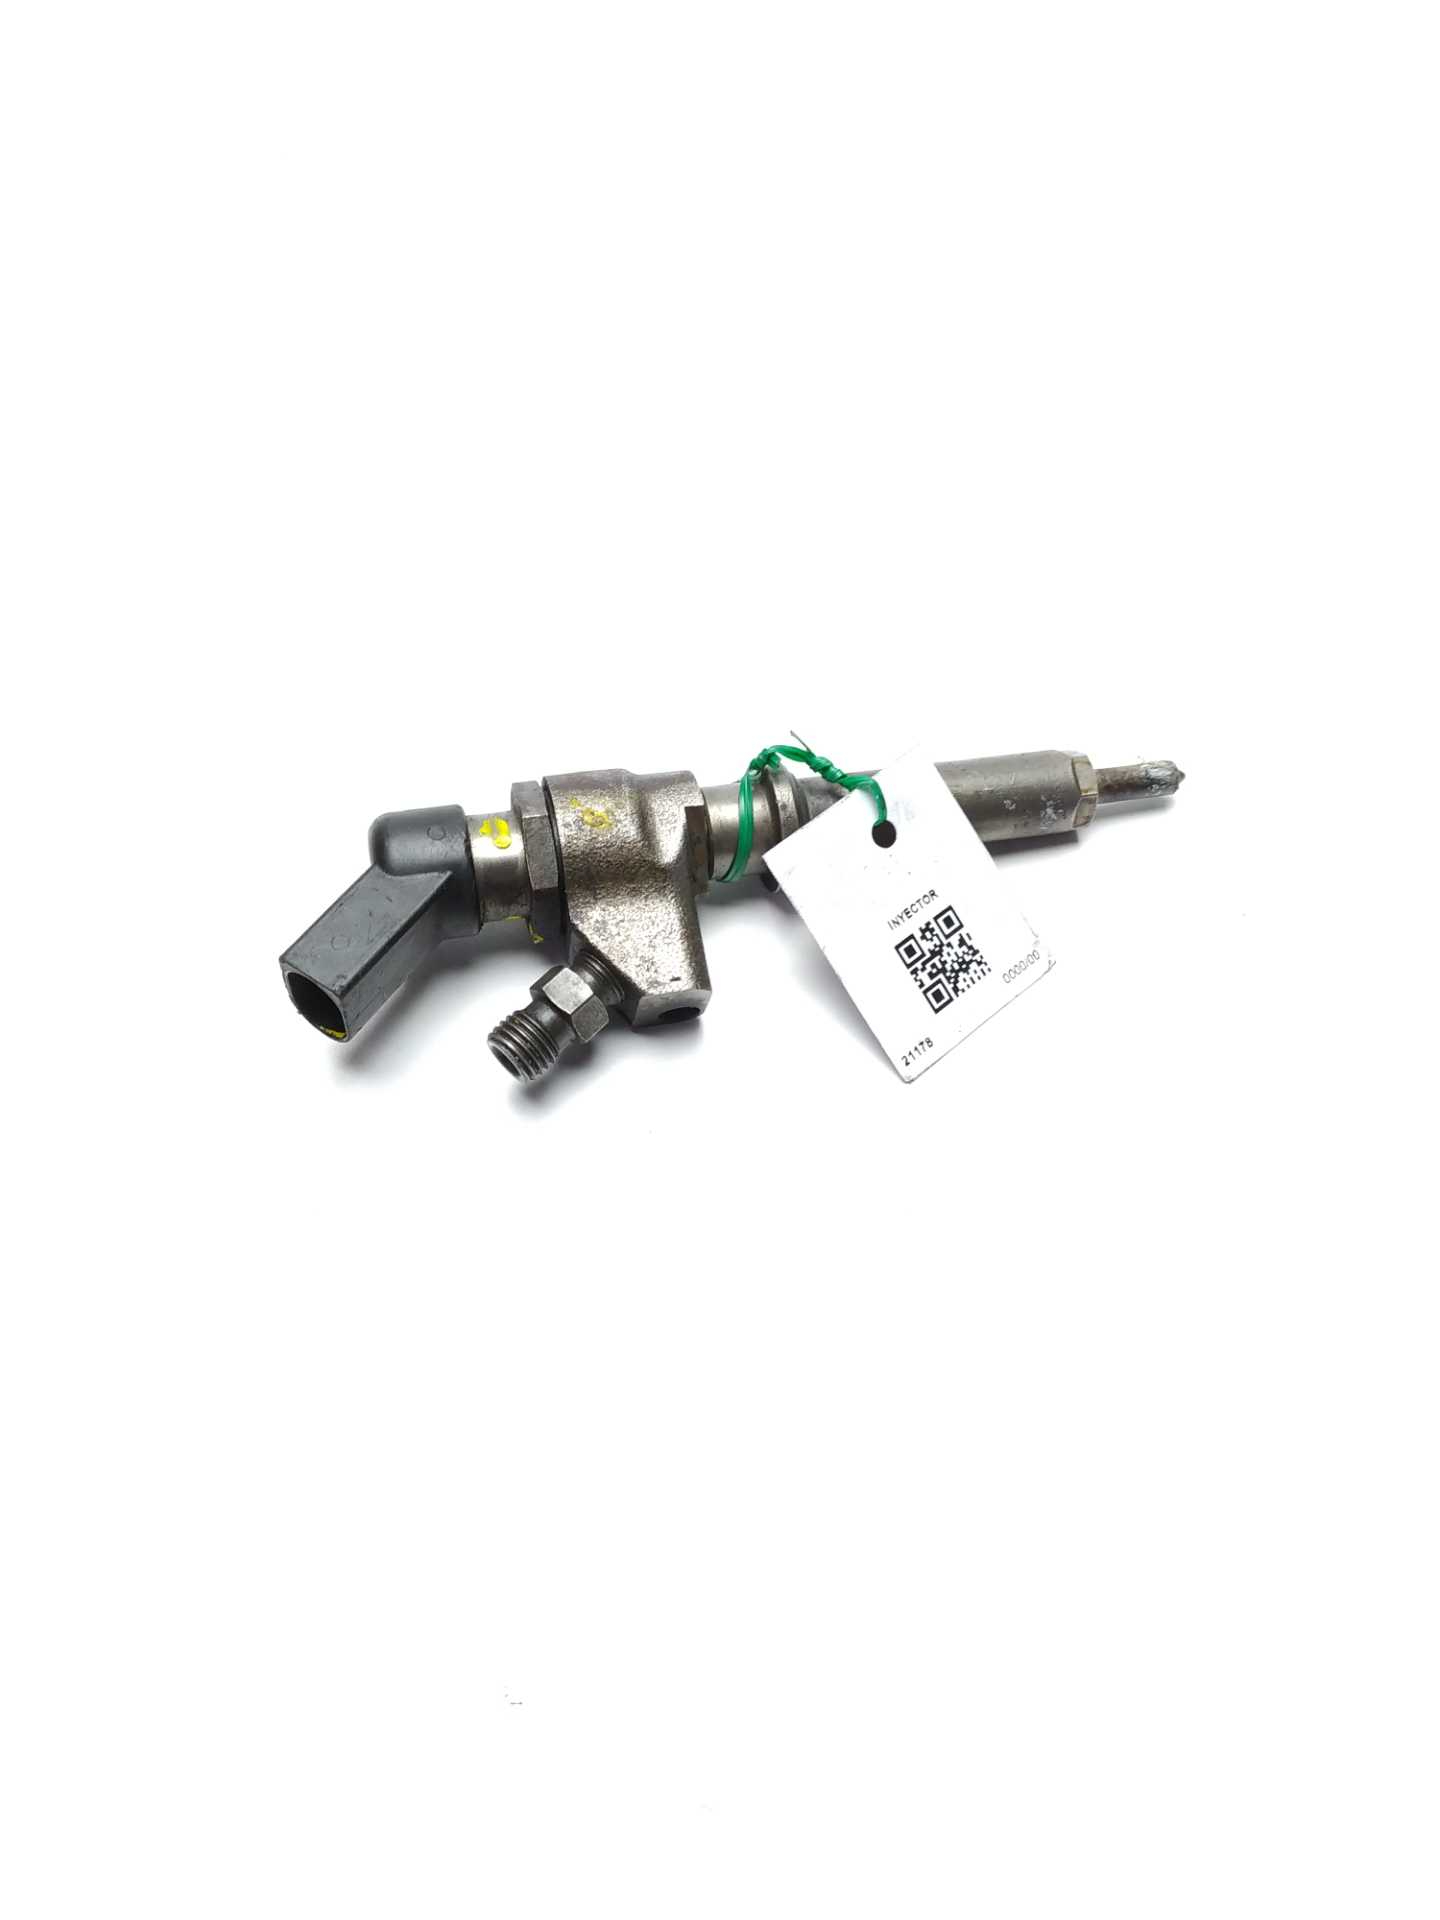 INYECTOR PEUGEOT 307 2.0 HDi 90 (66 KW / 90 CV) (08.2000 - 03.2007)